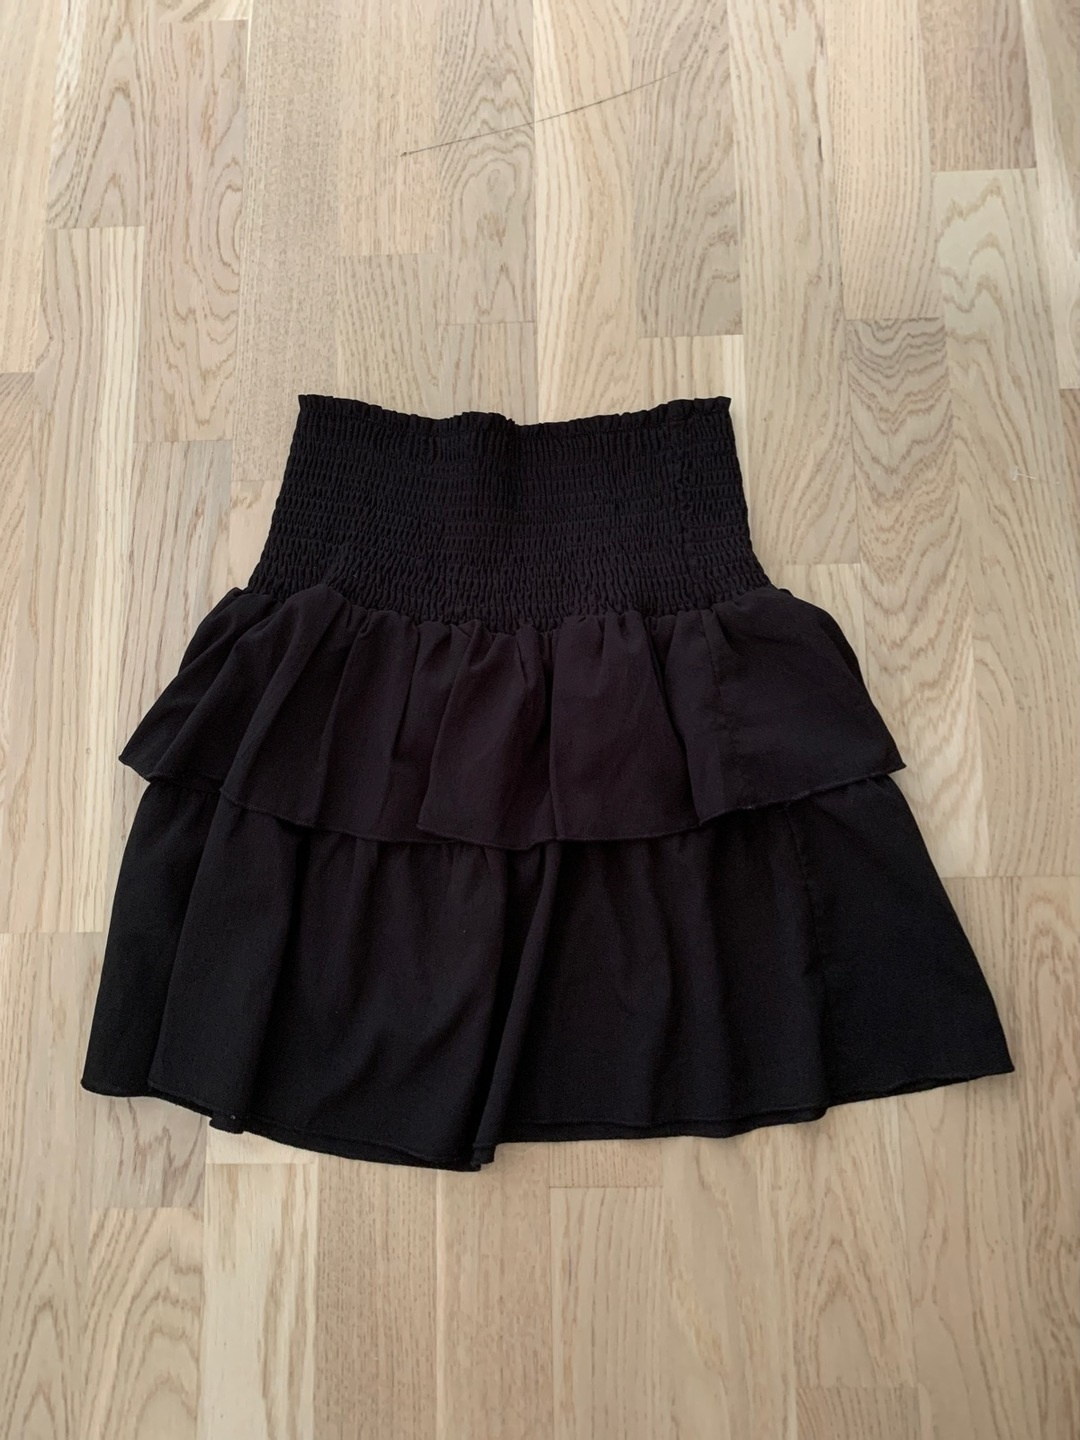 Women's skirts - PROJECT UNKOWN photo 1